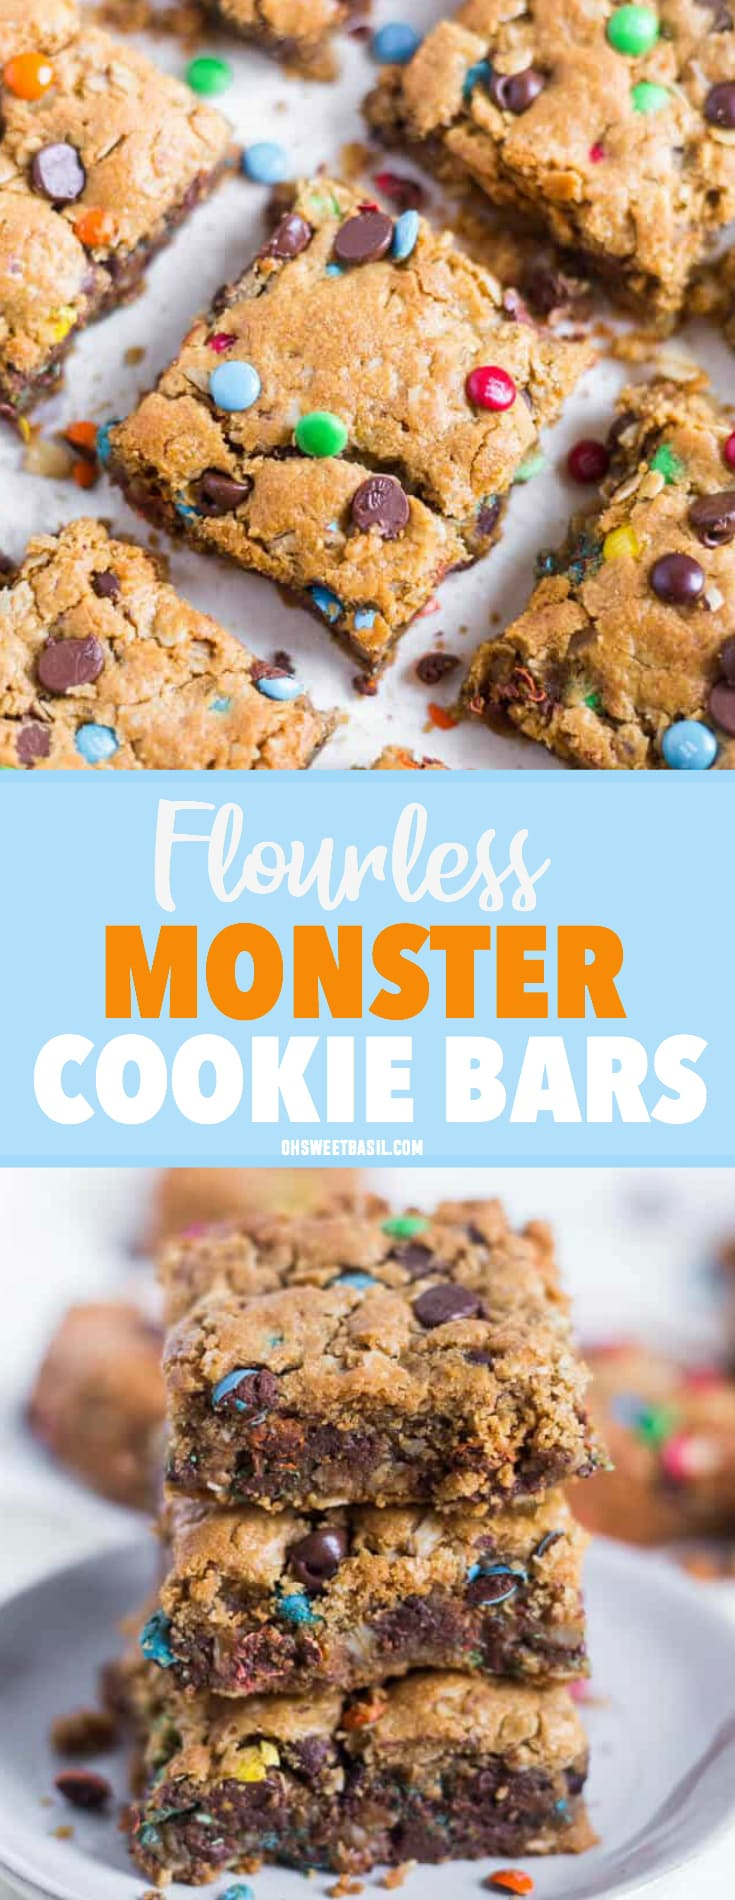 A batch of flourless monster cookie bars